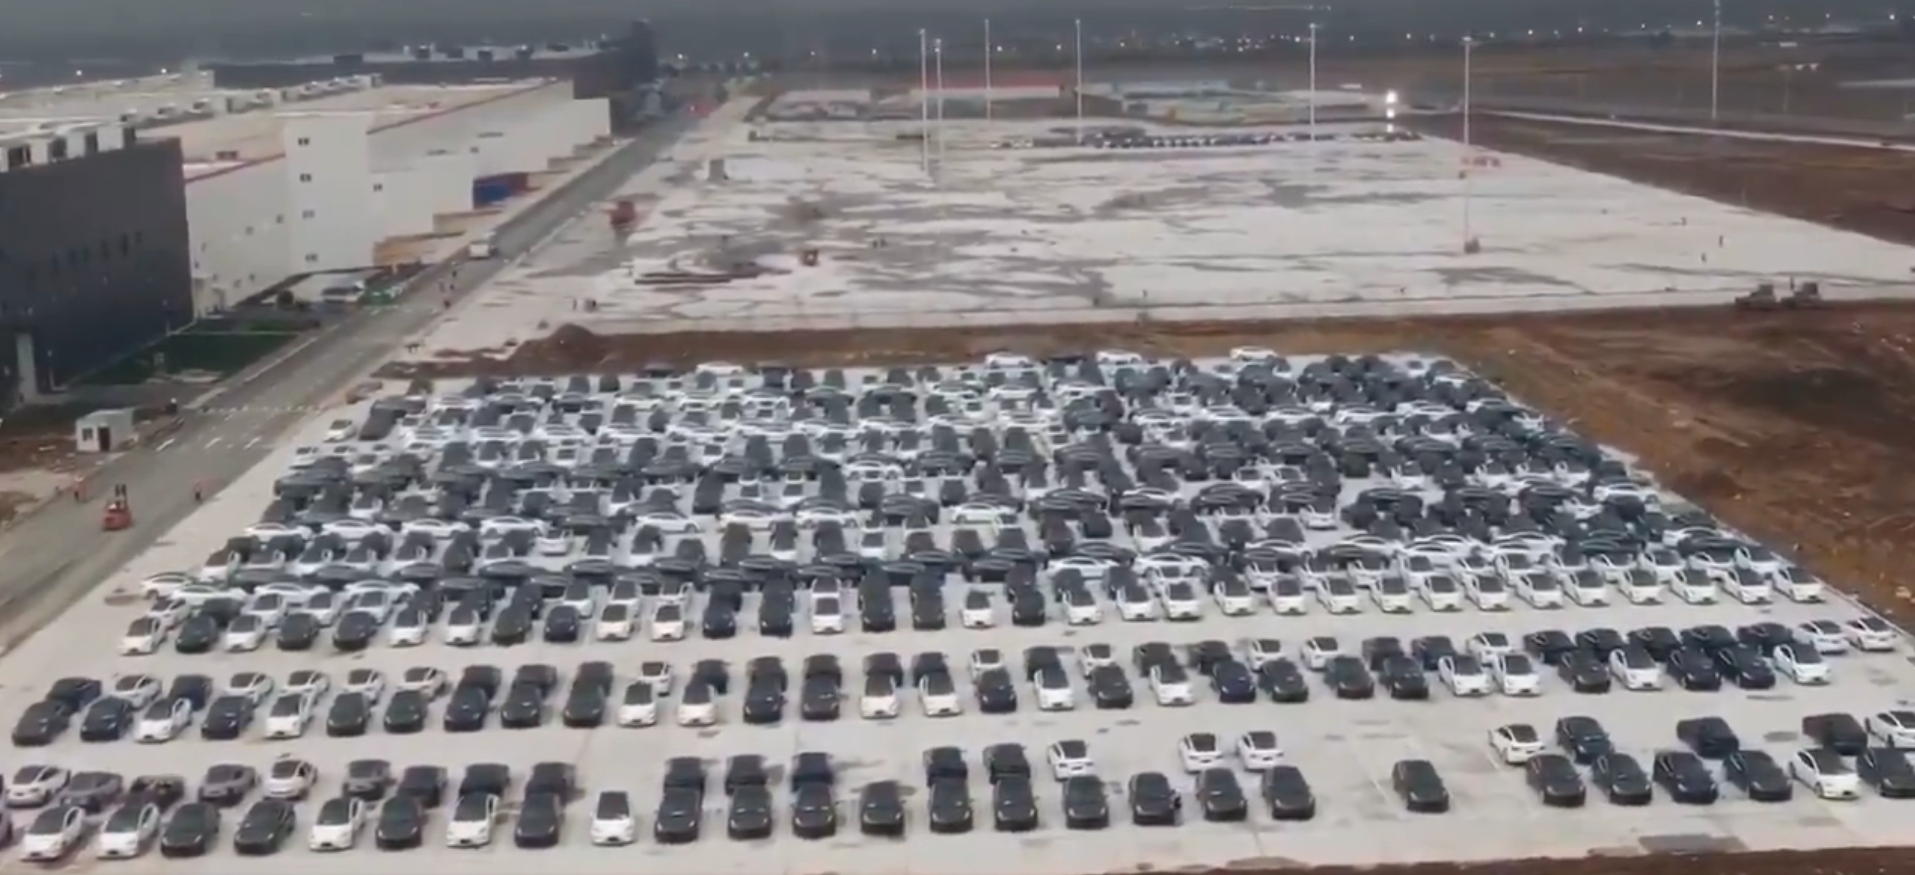 Gigafactory Shanghai Model 3 parking lot